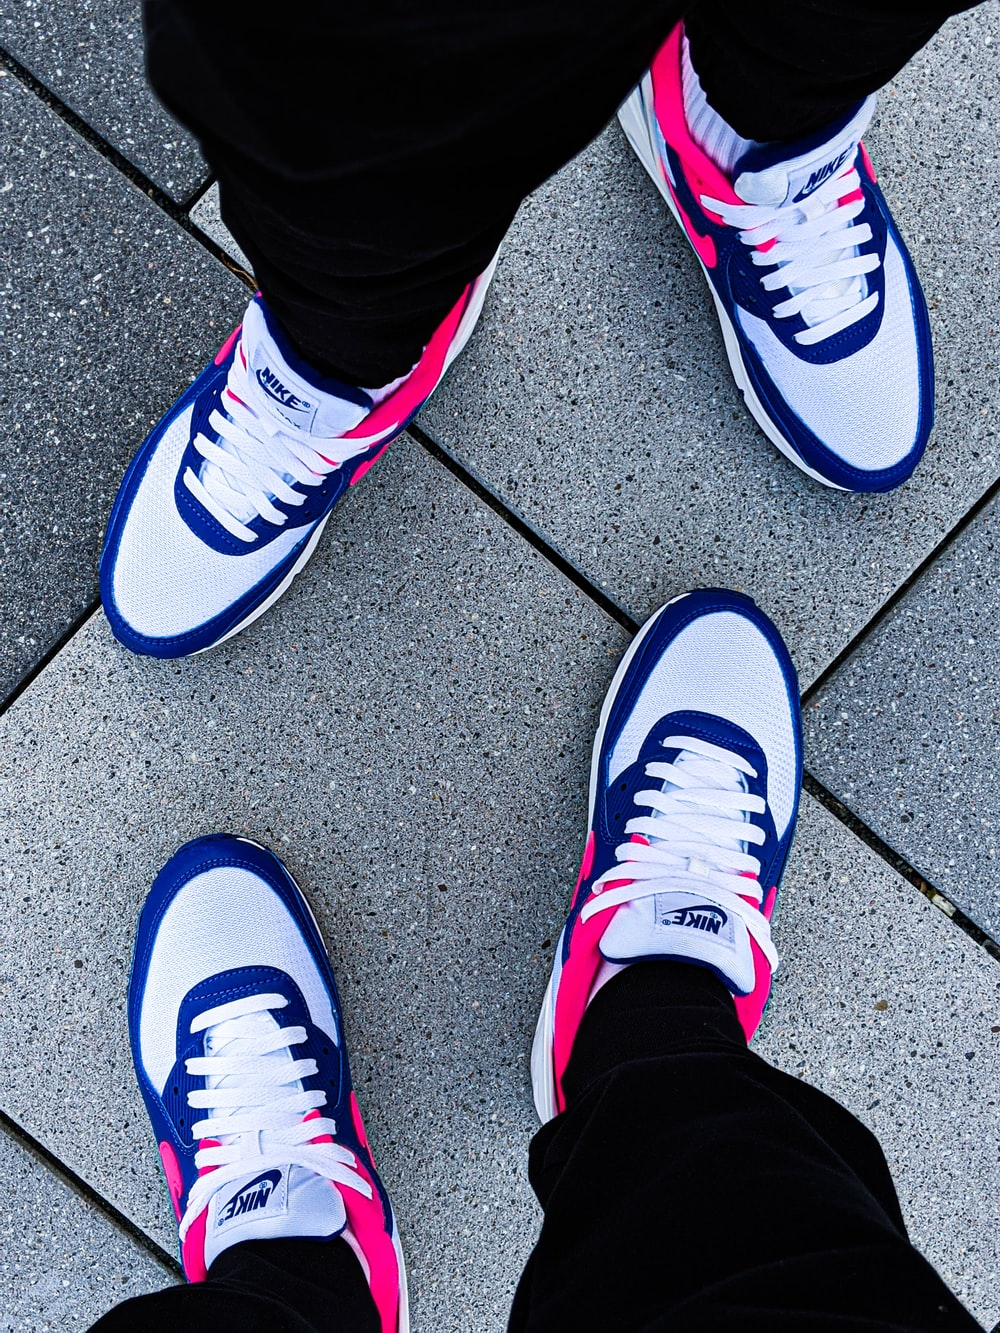 person wearing white and purple nike sneakers